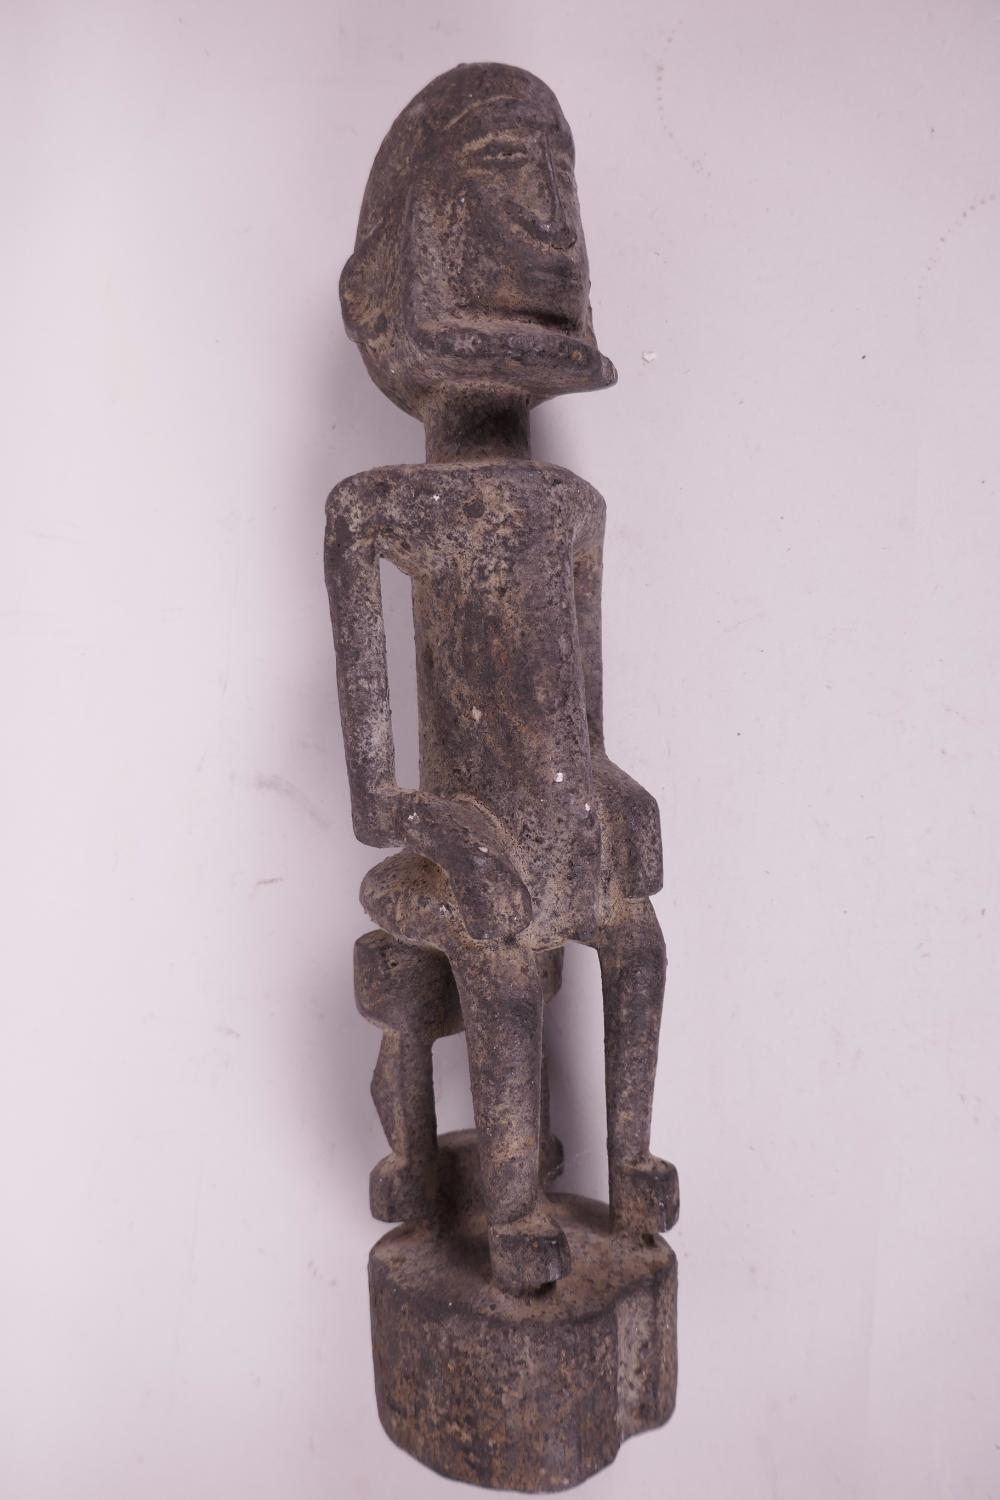 An African carved wood ceremonial figure of a seated man, possibly